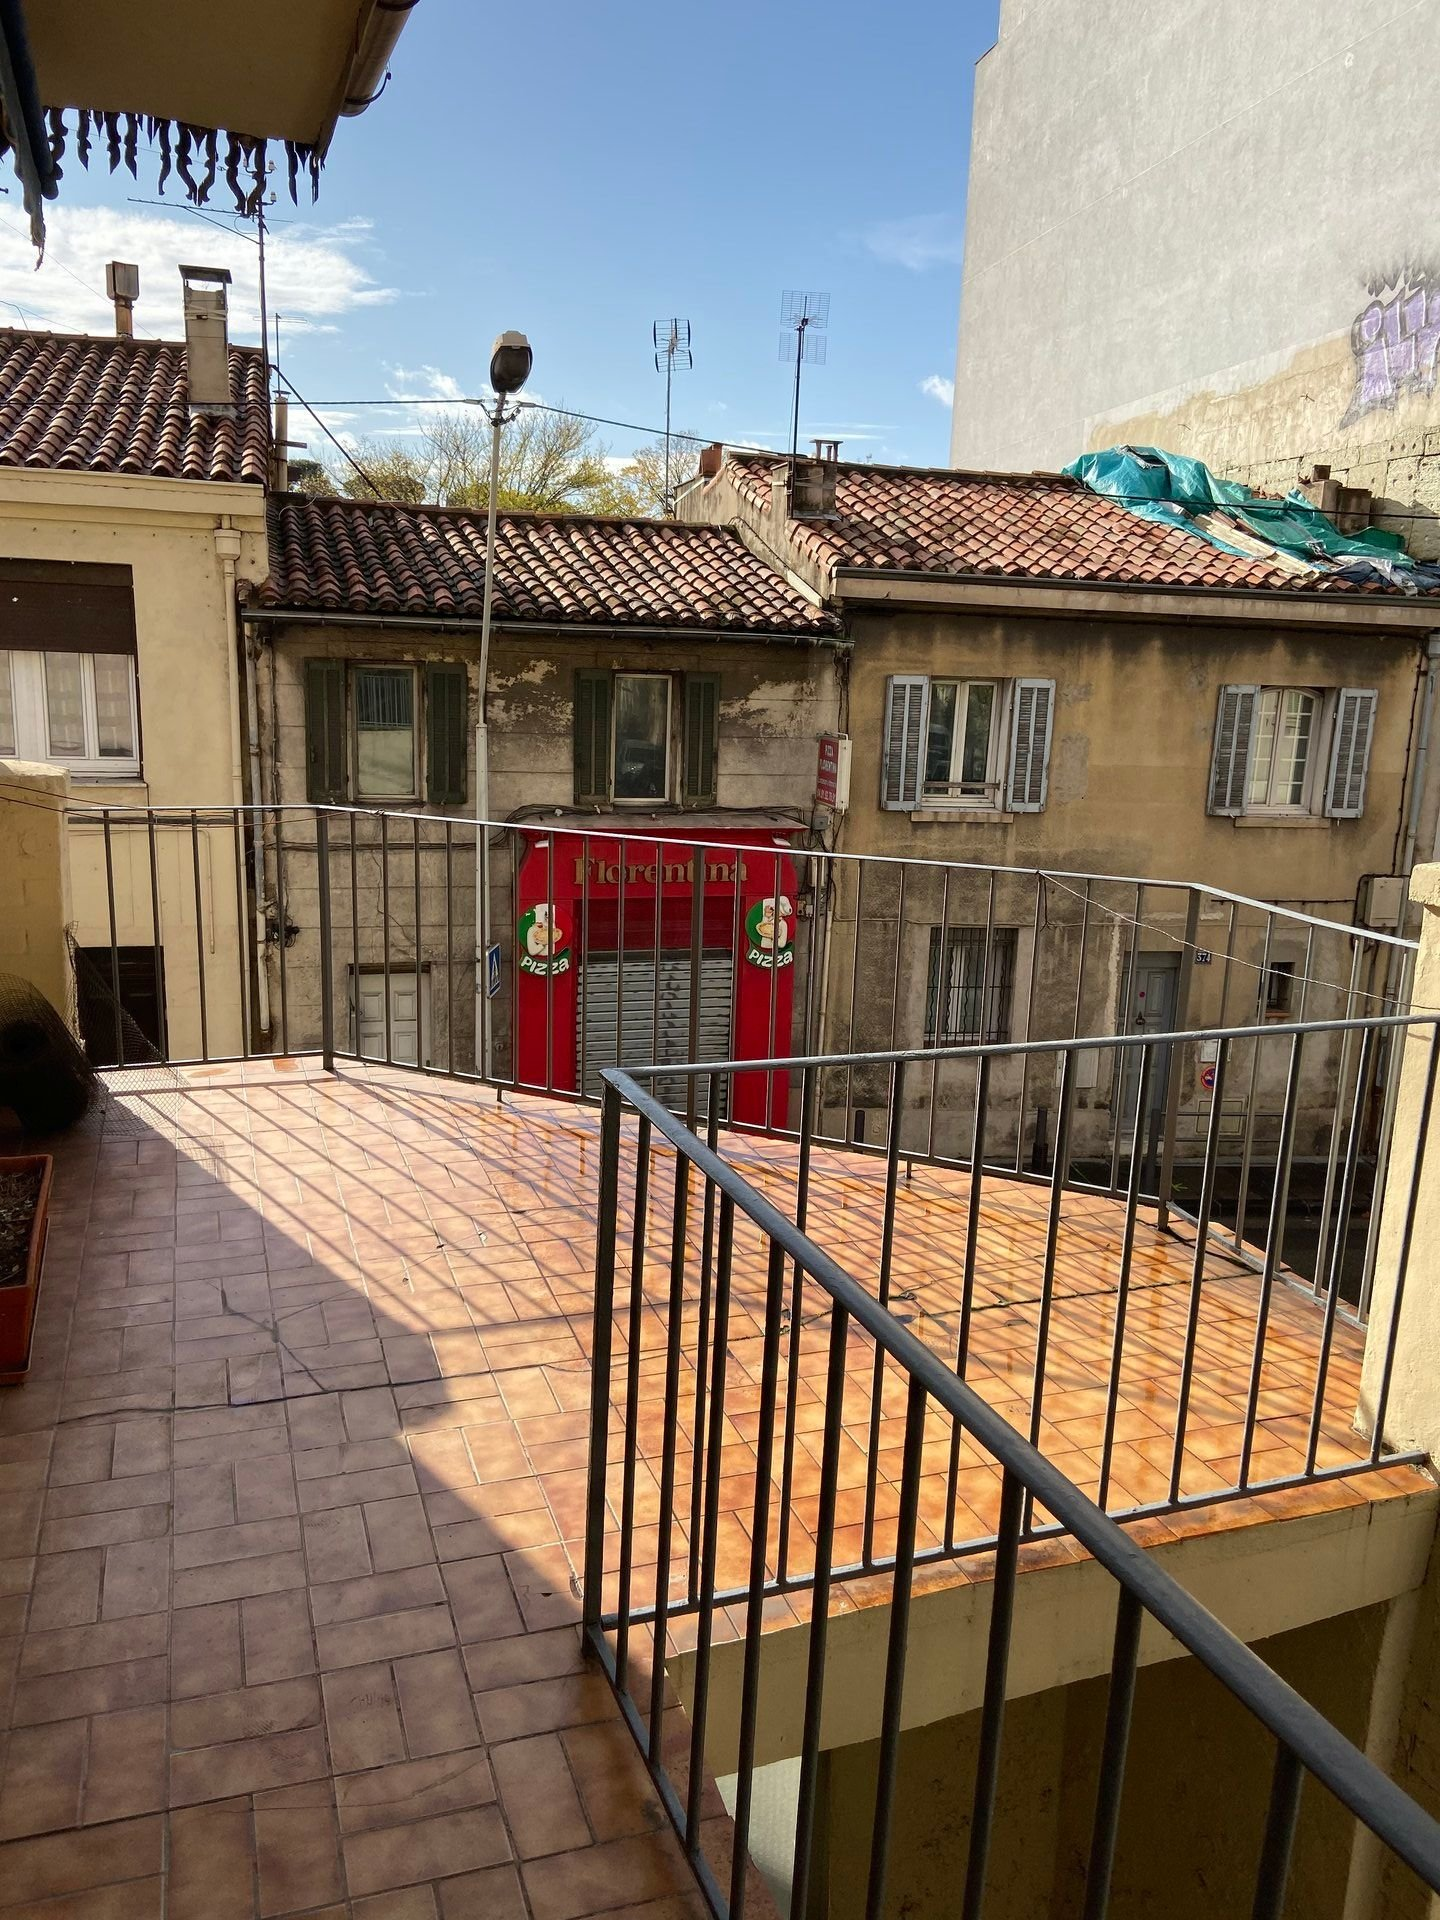 T2 La Conception Balcon 13005 Marseille